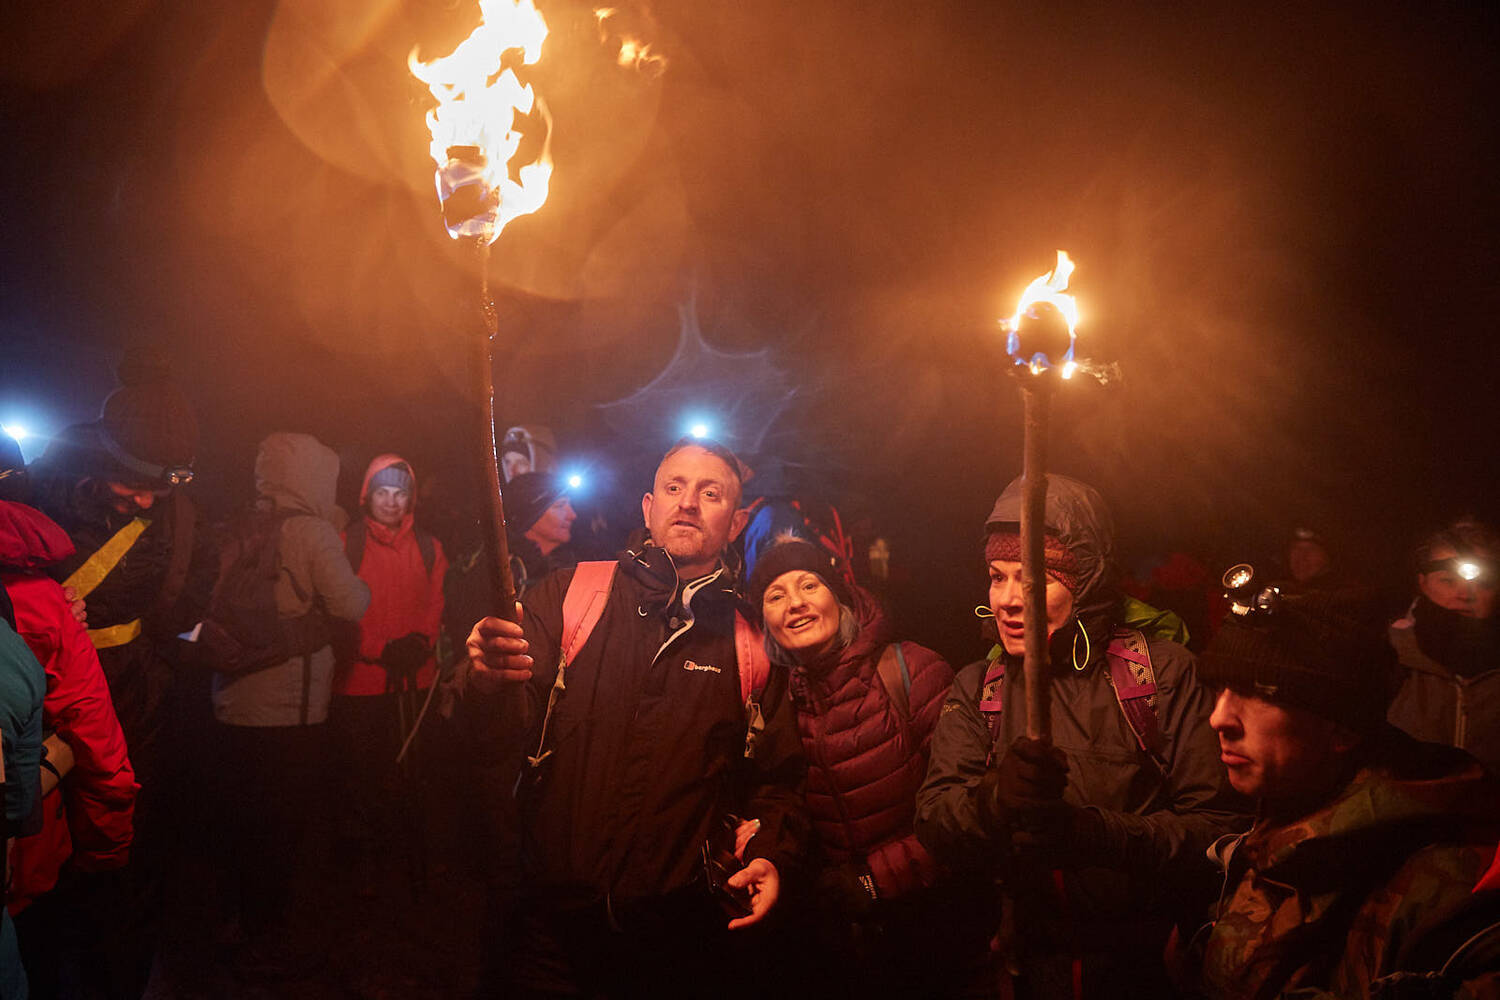 Participants in the 2019 Torchlight Challenge hold their flaming torches aloft